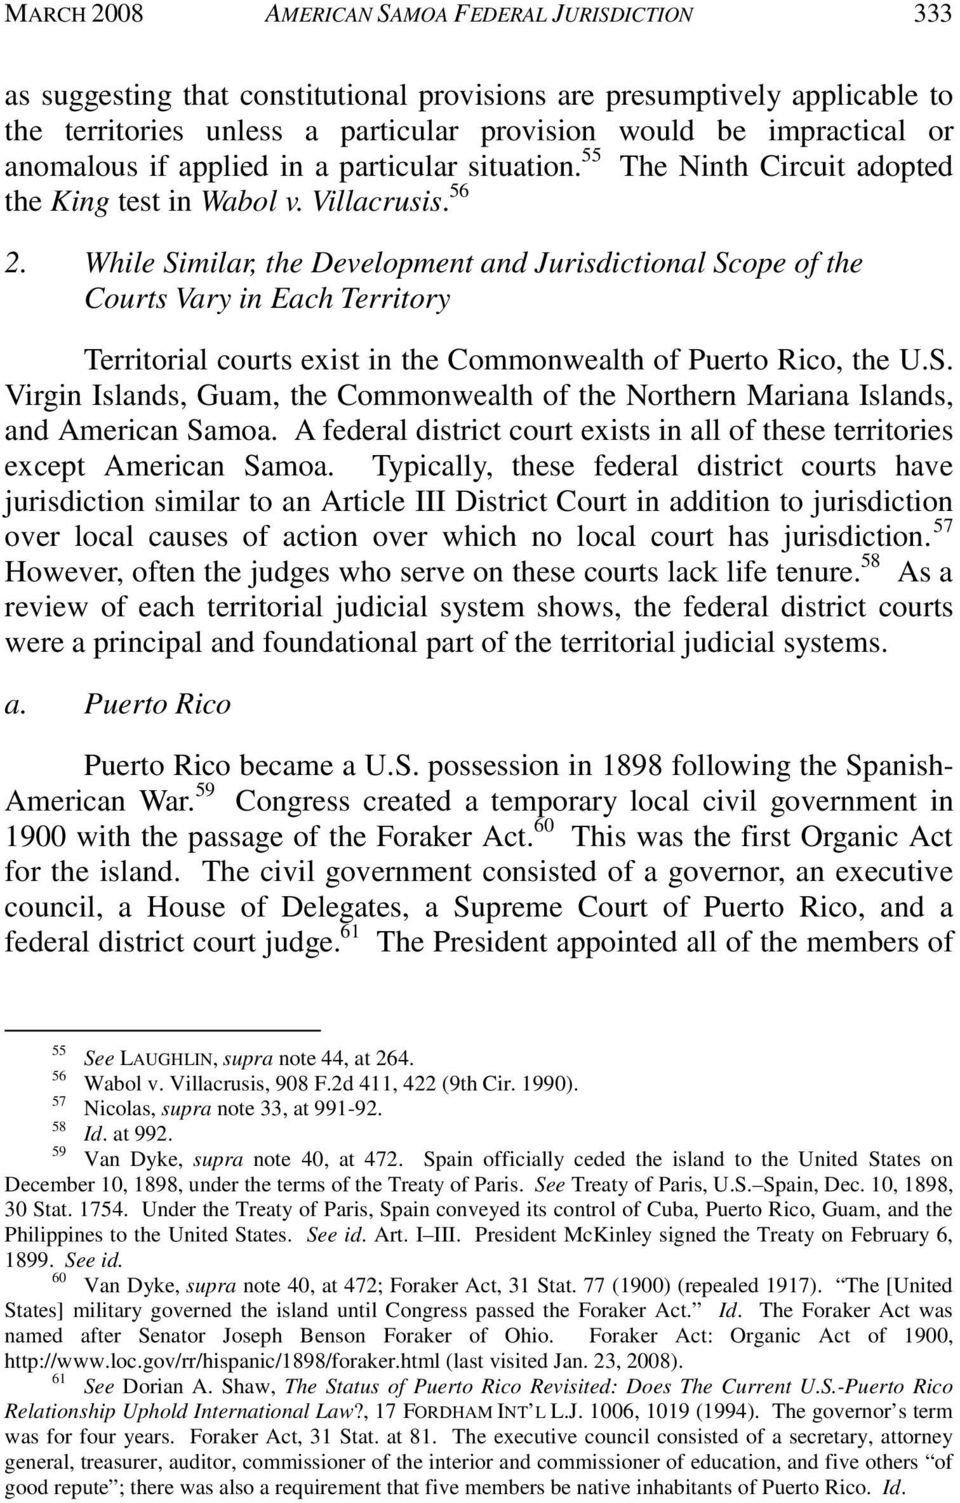 While Similar, the Development and Jurisdictional Scope of the Courts Vary in Each Territory Territorial courts exist in the Commonwealth of Puerto Rico, the U.S. Virgin Islands, Guam, the Commonwealth of the Northern Mariana Islands, and American Samoa.